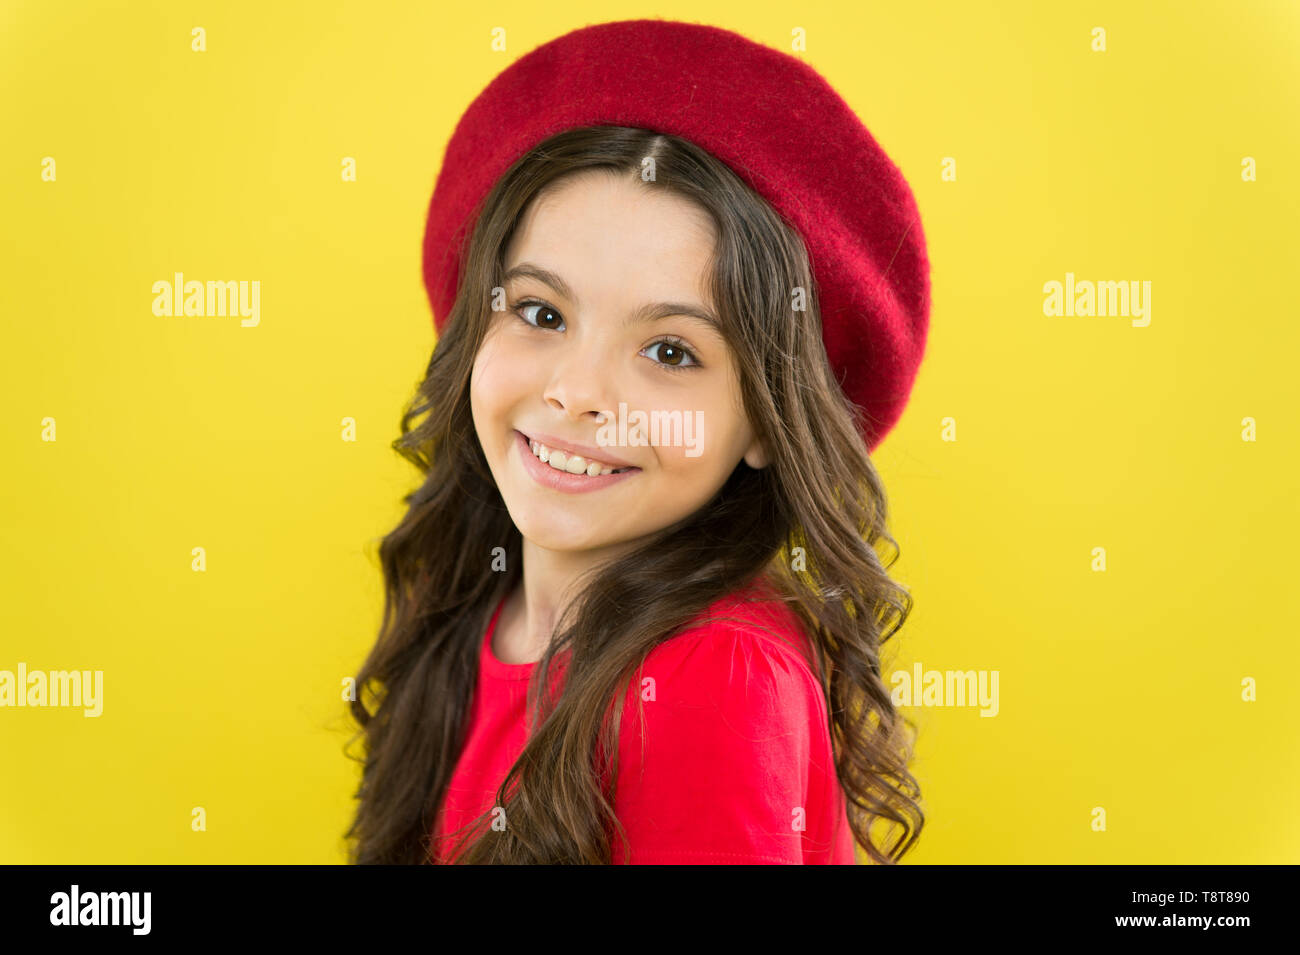 21a69726e Kid girl long healthy shiny hair wear red hat. Little girl with long hair.